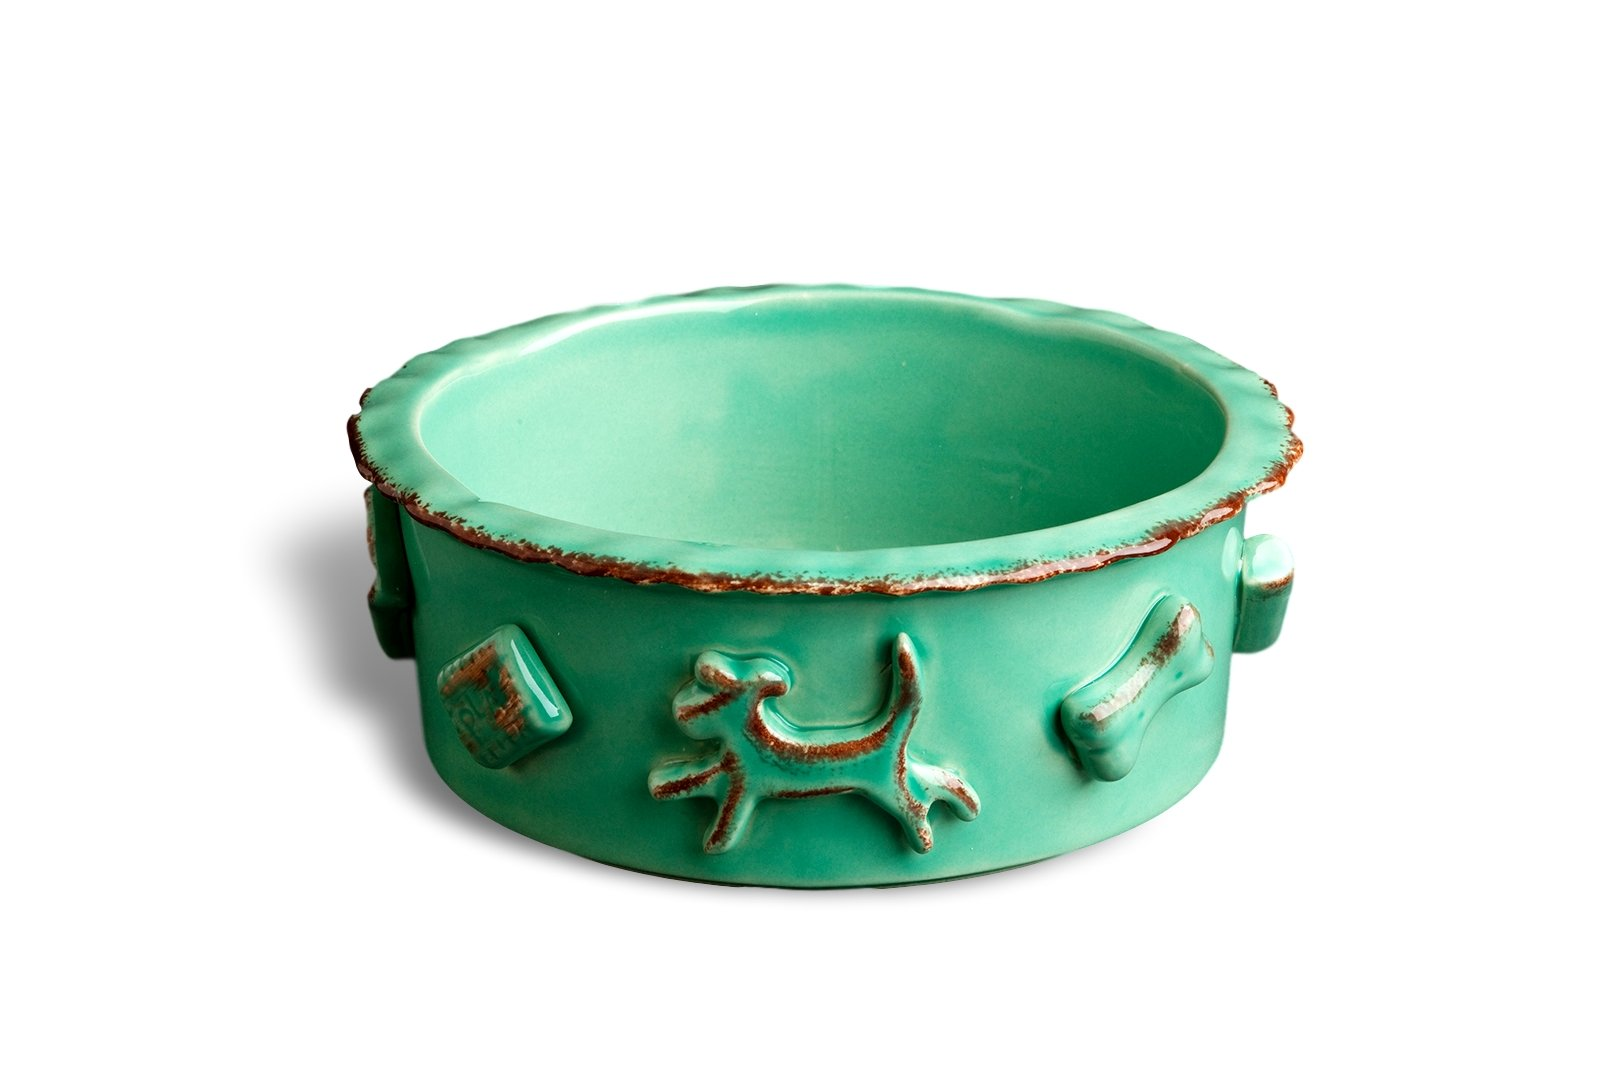 Carmel Ceramica PDMA3001 Dog Food/Water Bowl, Aqua/Green, Medium